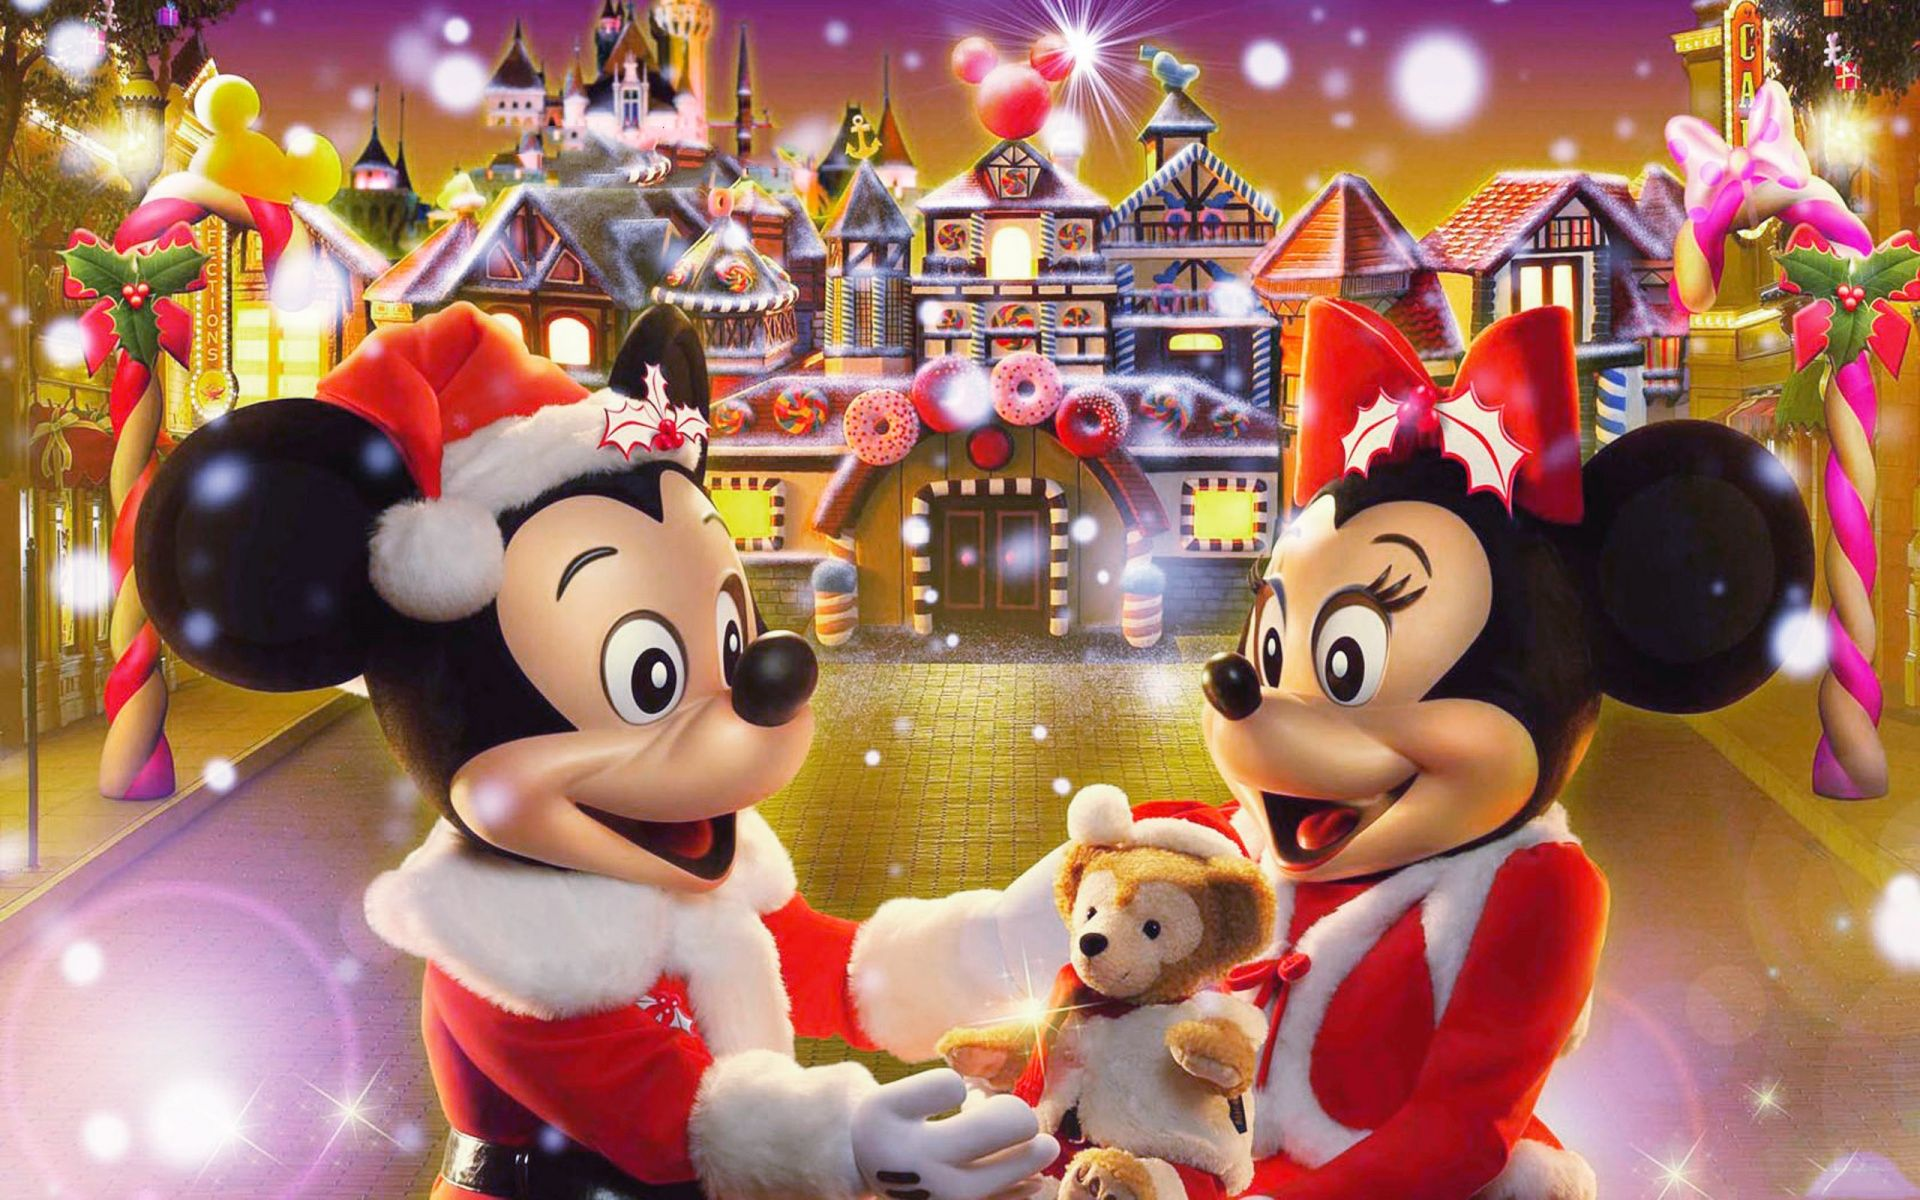 Walt Disney Christmas Wallpaper.Pin On Disney Christmas Wallpaper